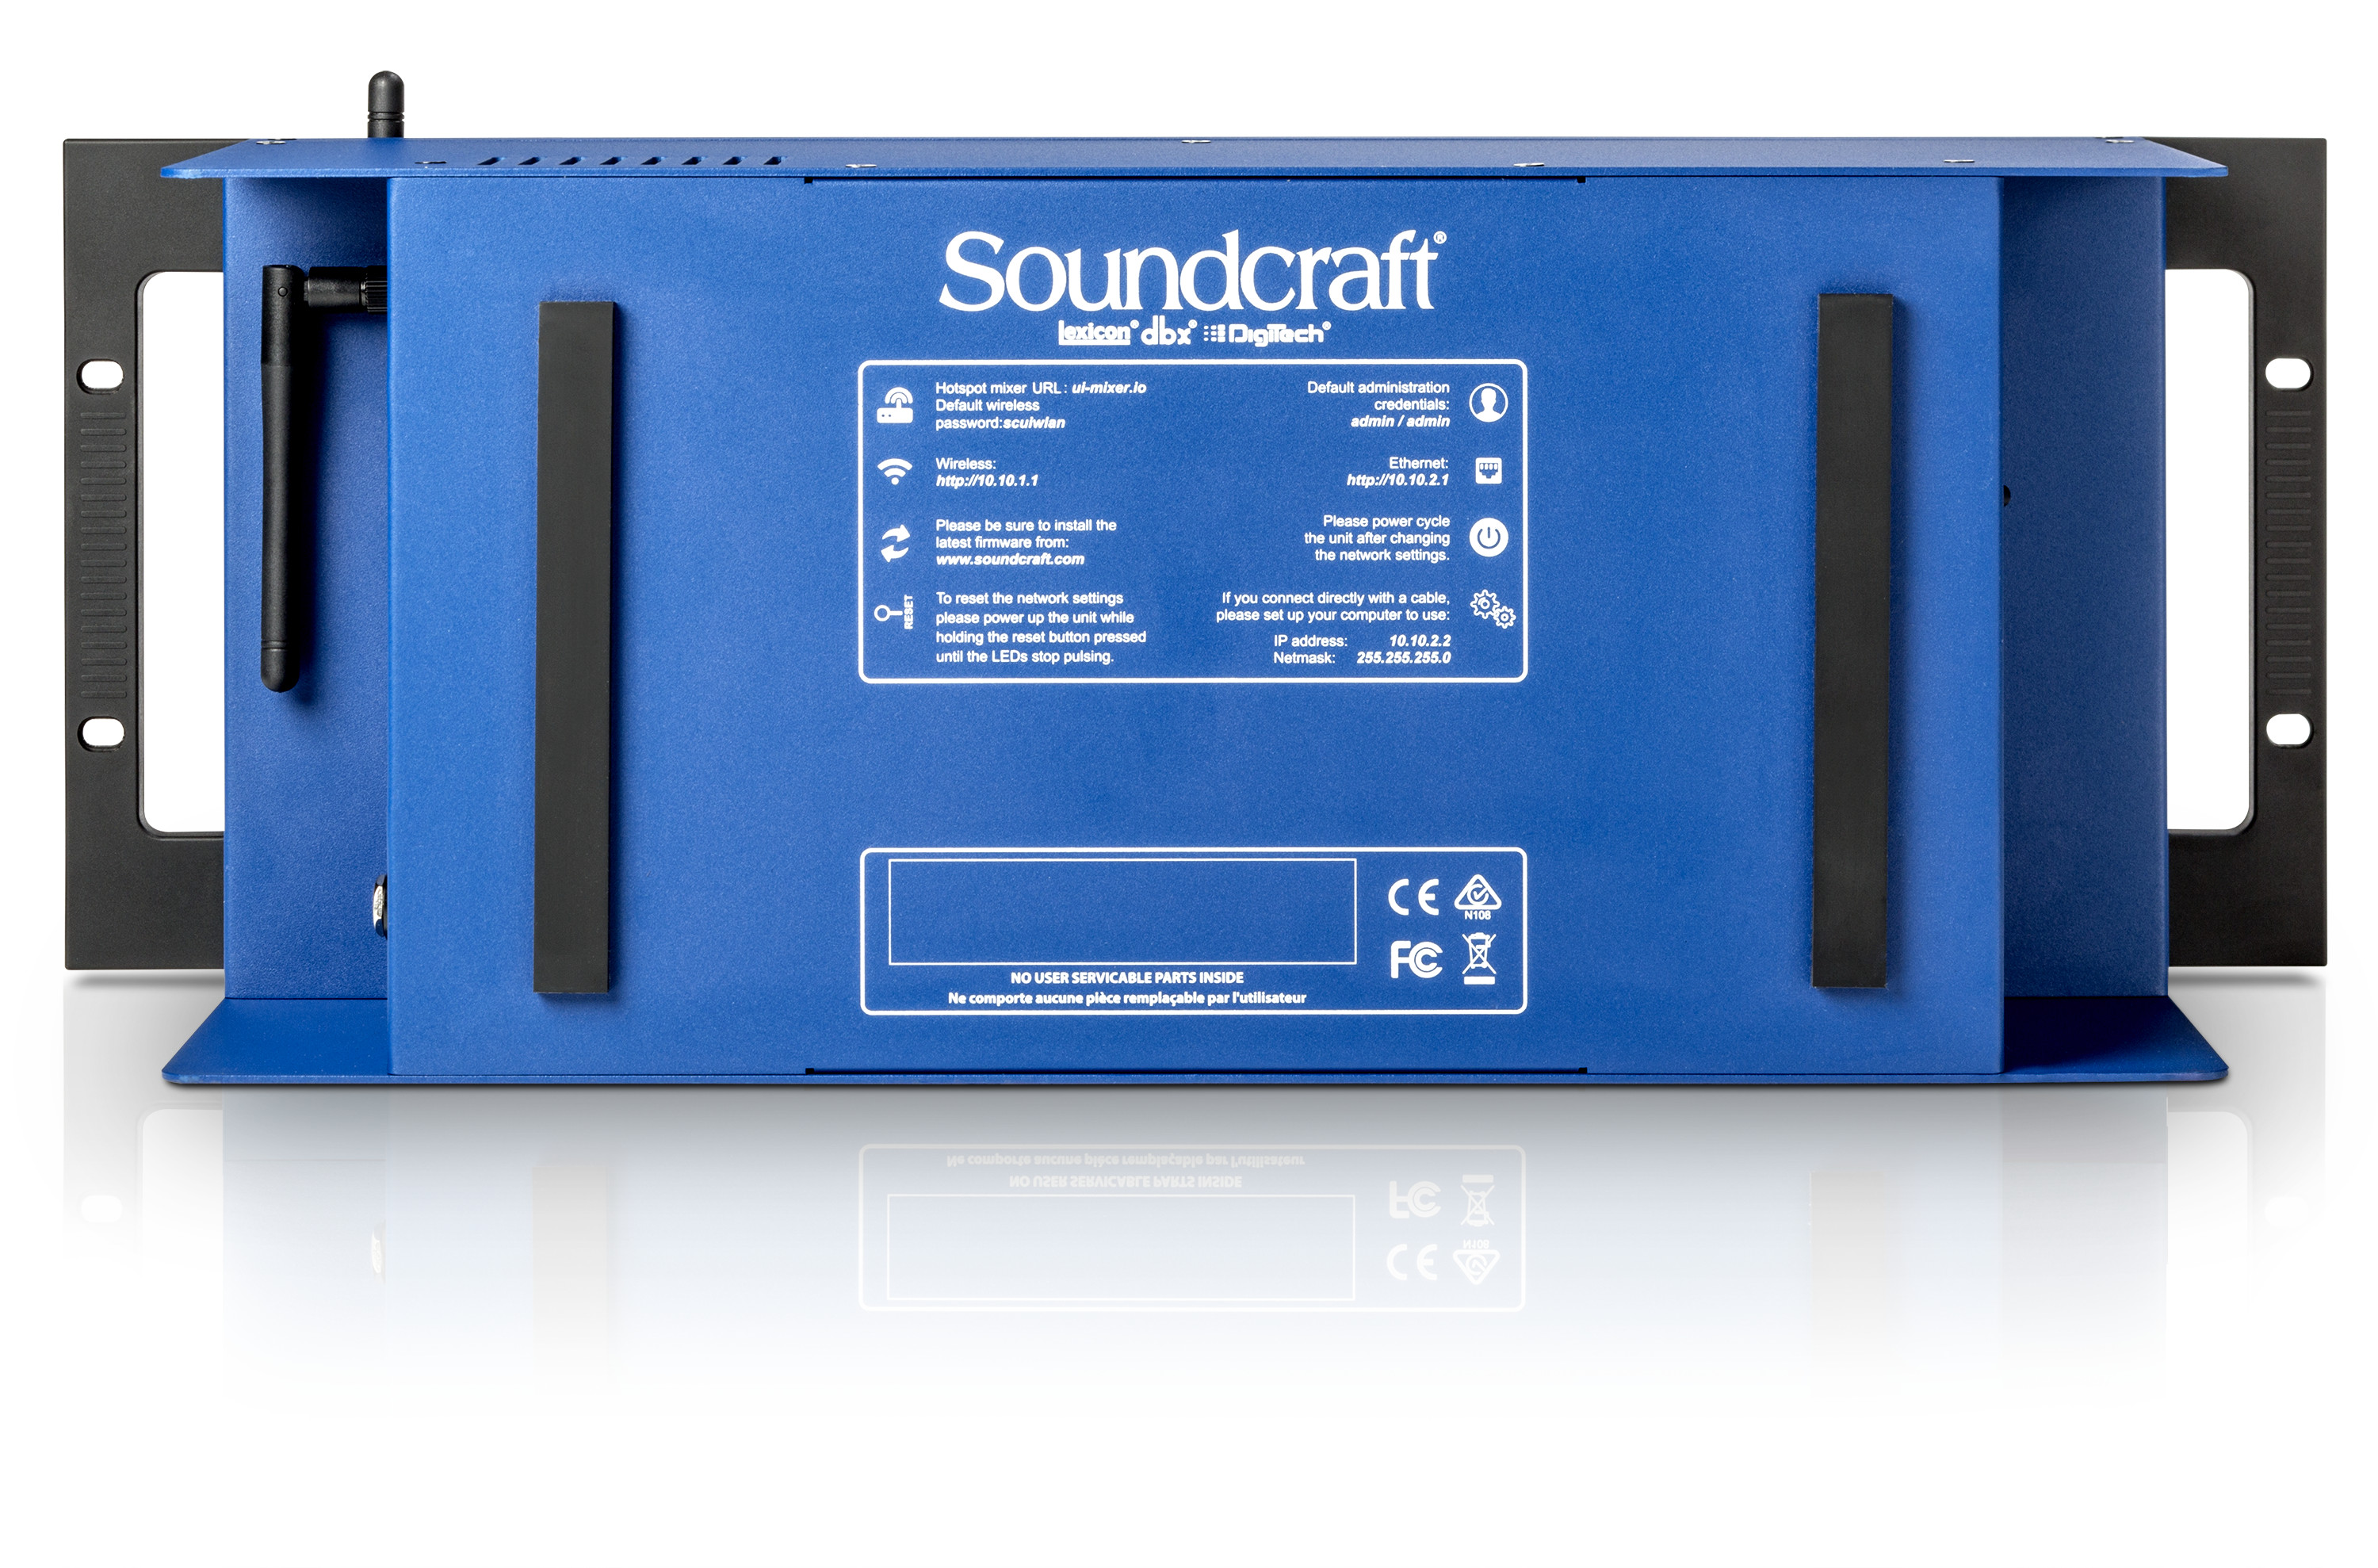 Ui24r Soundcraft Professional Audio Mixers Circuit Board Maker Quality For Sale Back Tiny Square